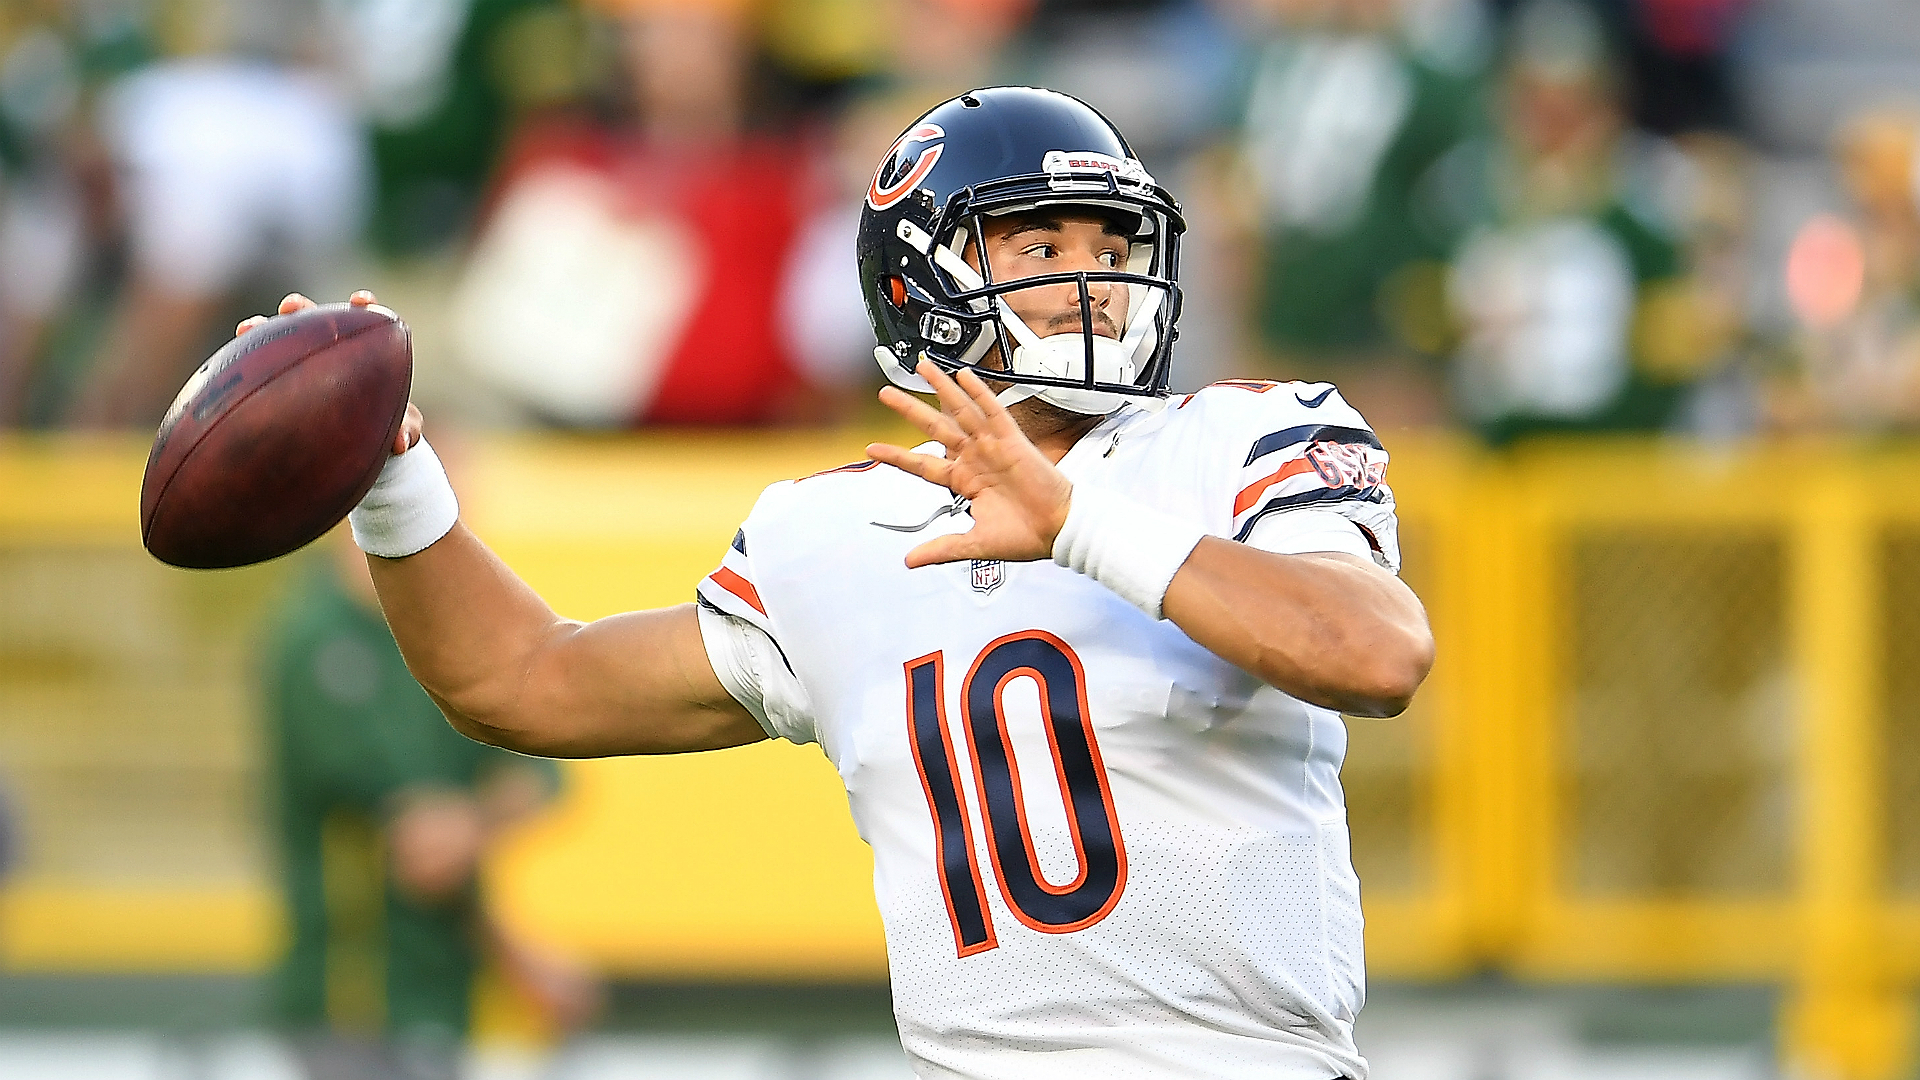 In a wild game, Bears lose to the Dolphins in overtime